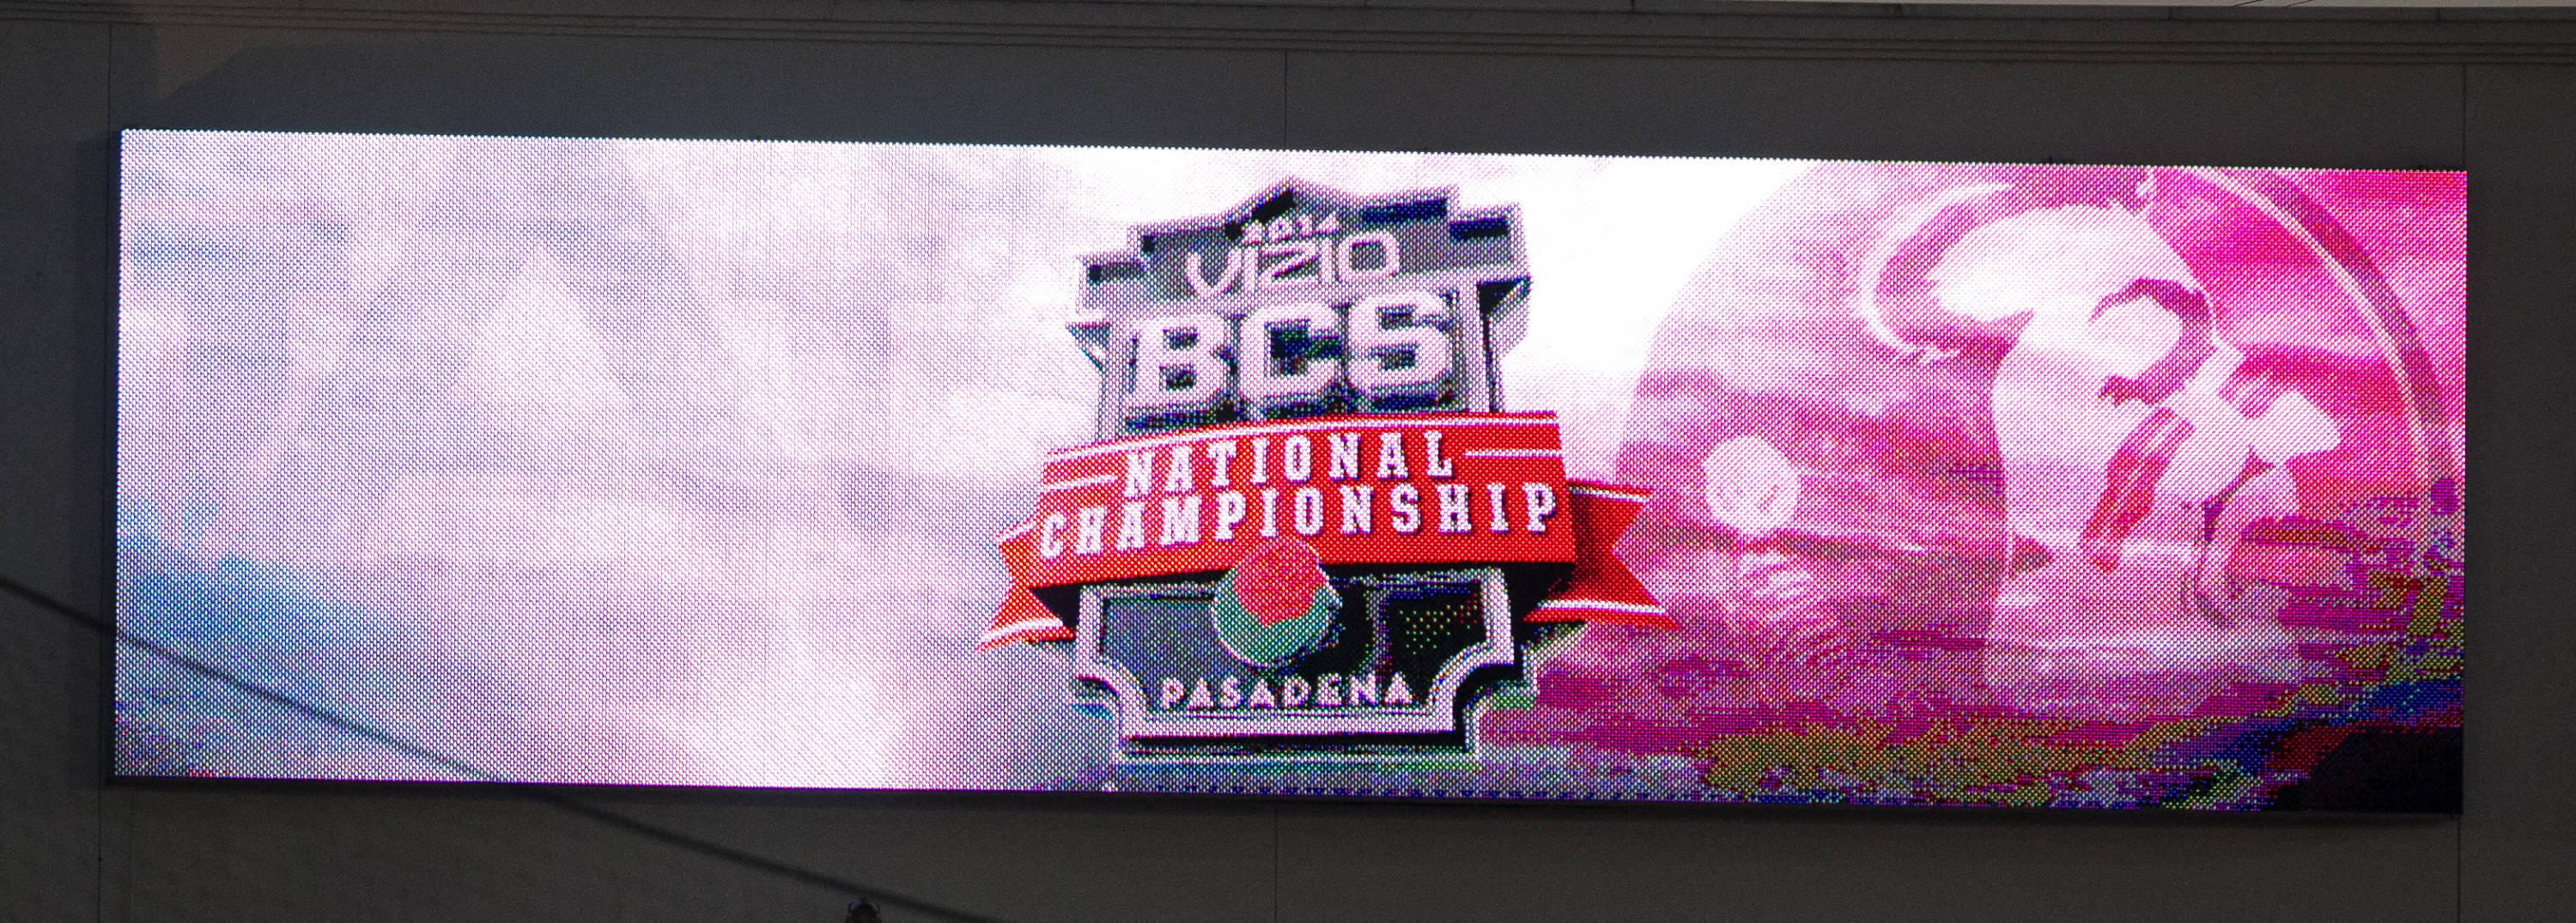 BCS Championship, FSU vs Auburn, Rose Bowl, Pasadena, CA,  1-06-14,  (Photo by Steve Musco)